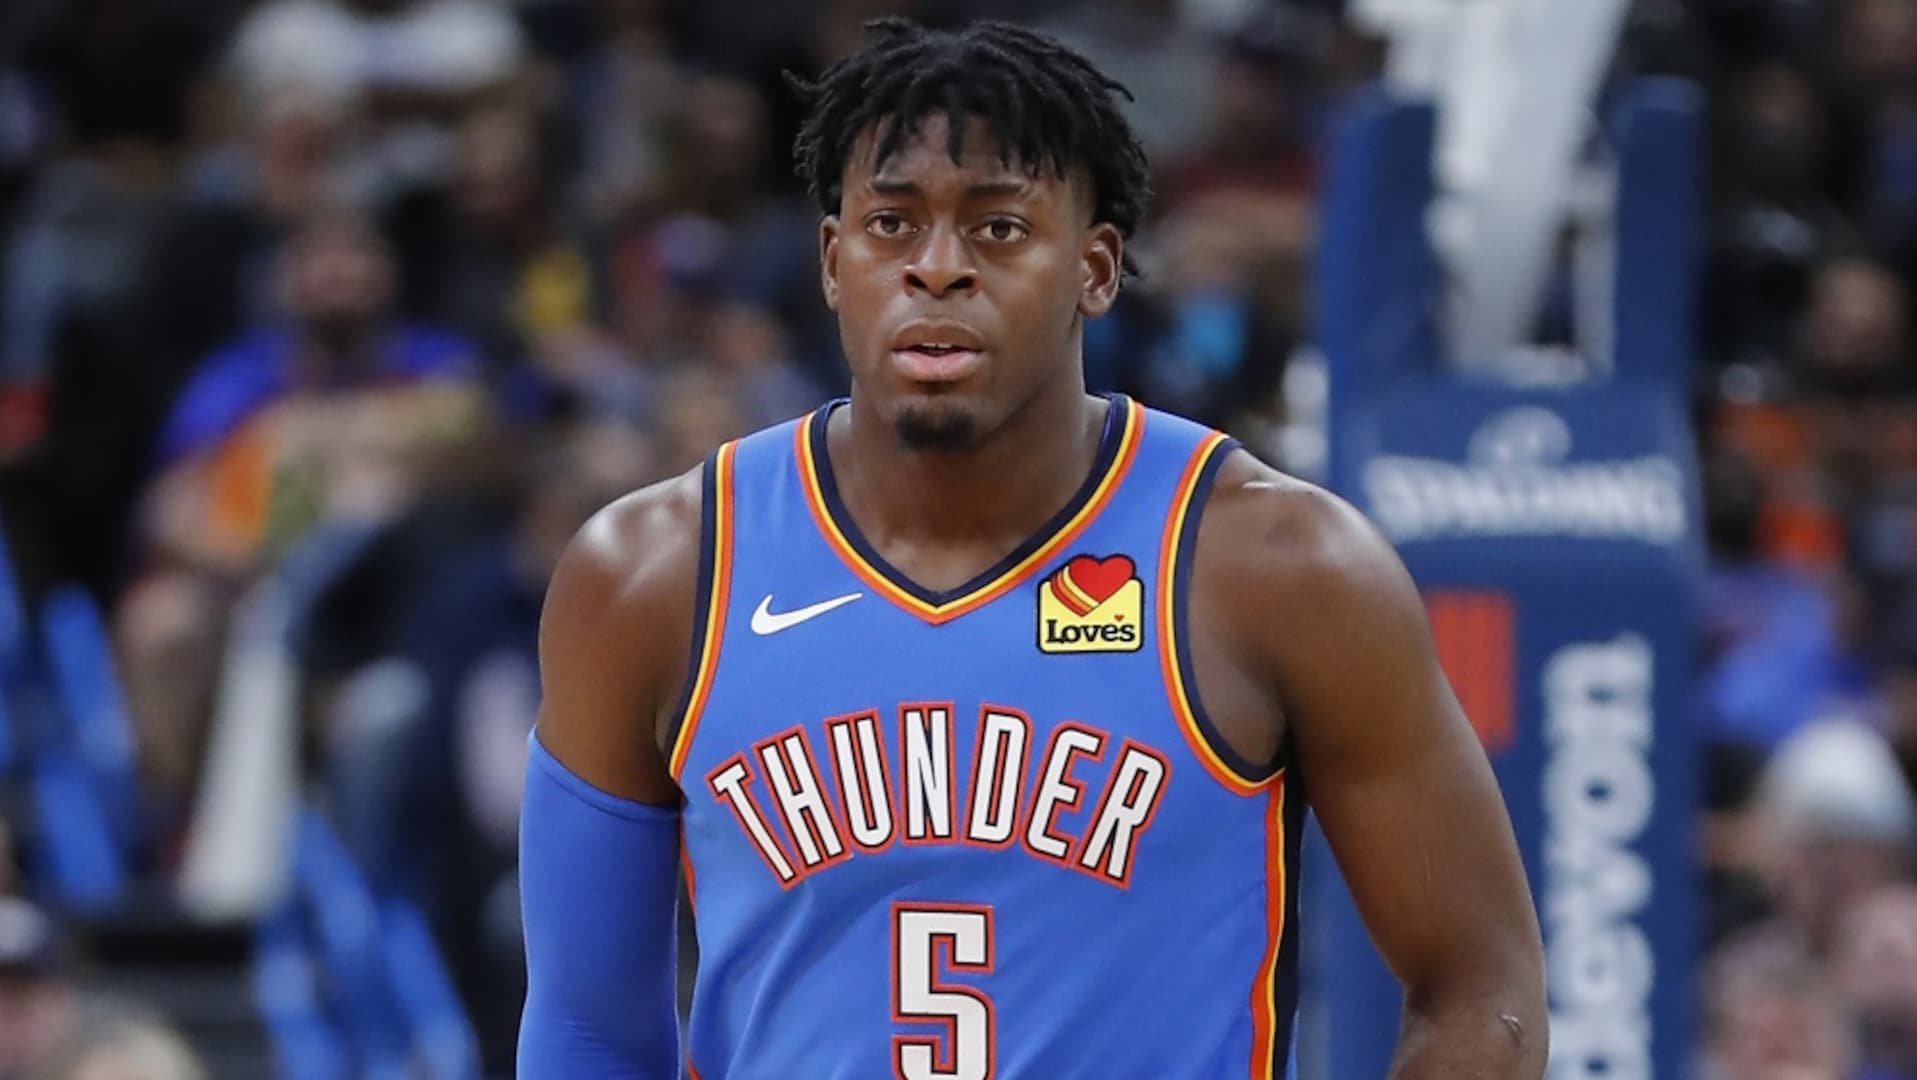 Thunder sign Luguentz Dort to multi-year deal